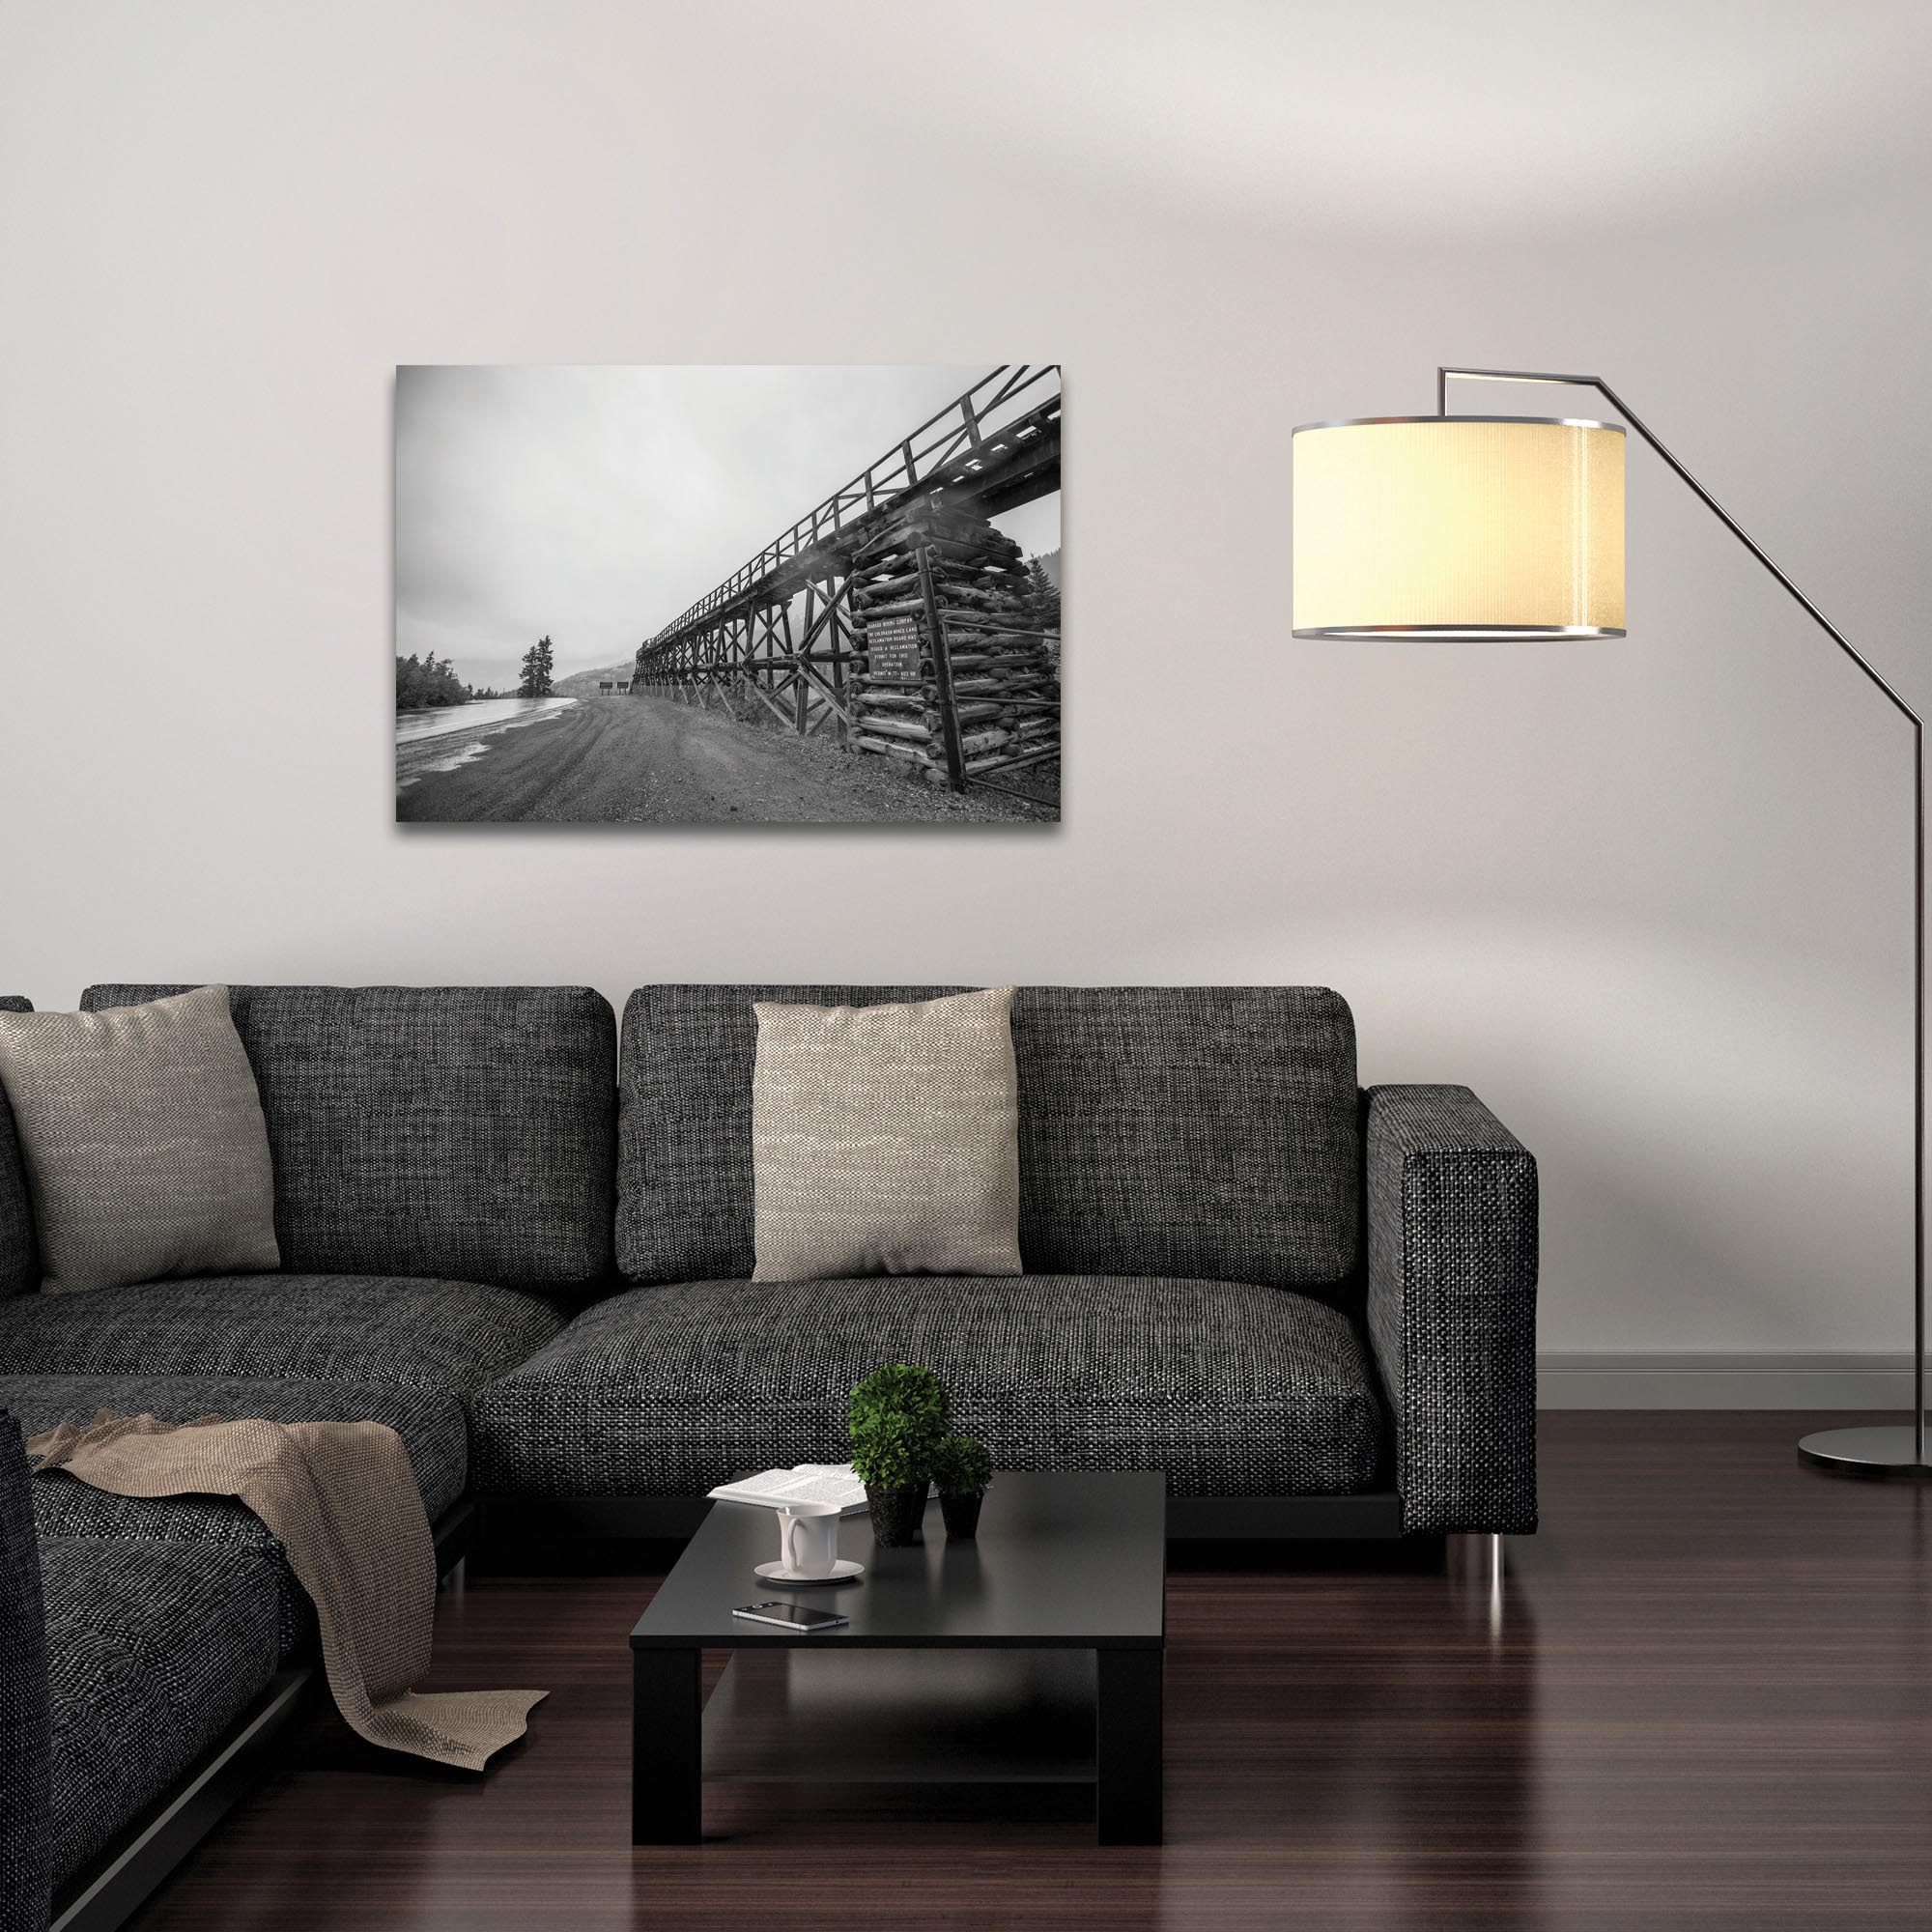 Western Wall Art 'Old Railroad Bridge' - Bridges Decor on Metal or Plexiglass - Lifestyle View